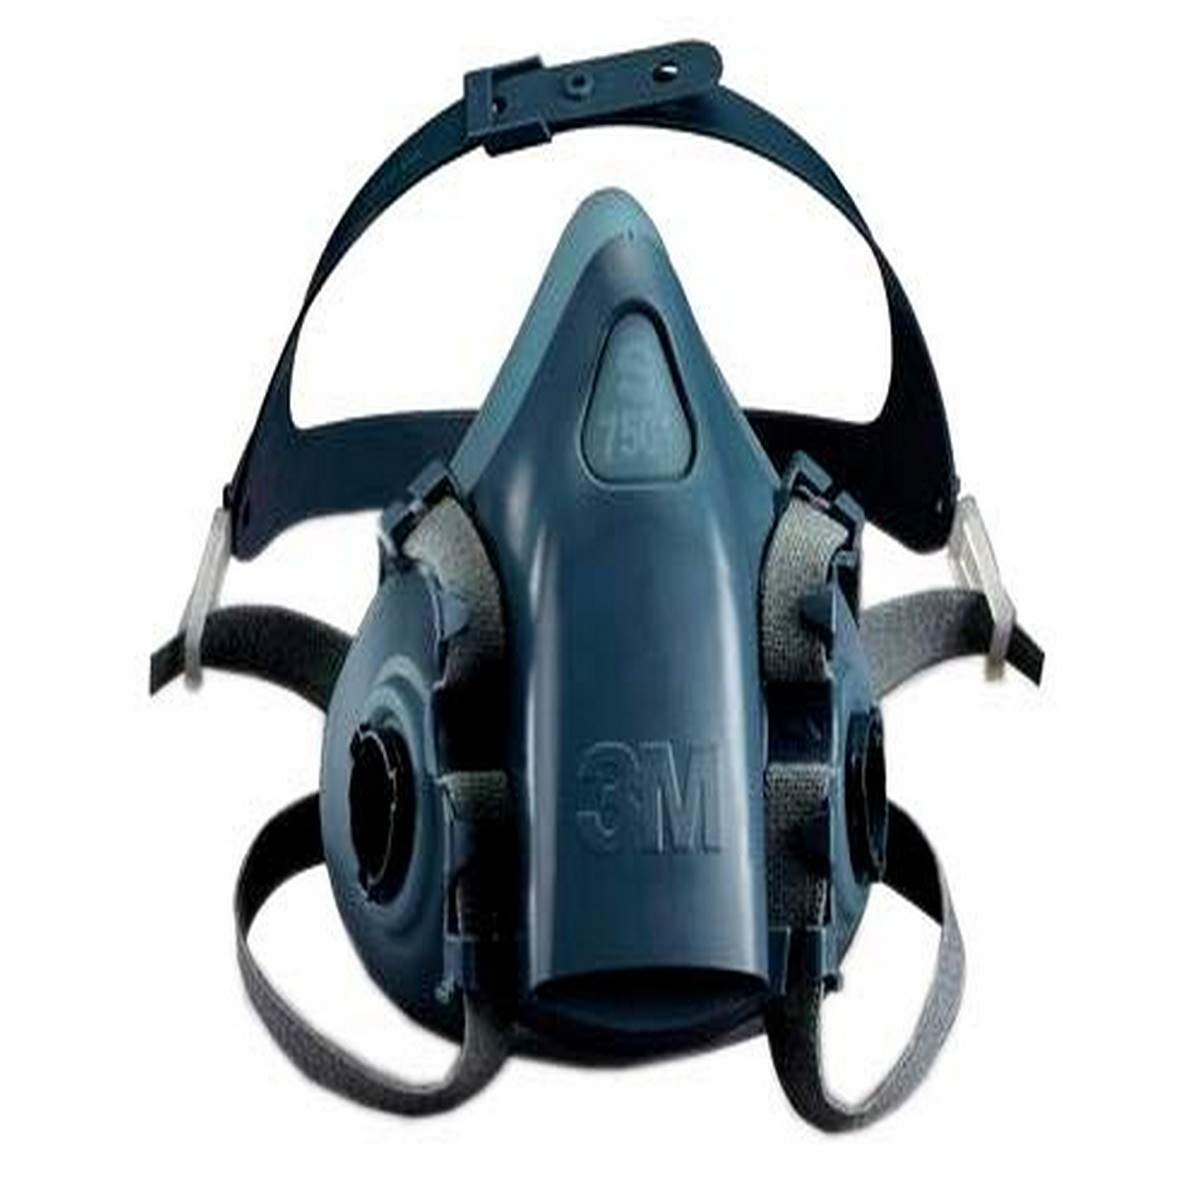 3M Safety 142-7503 7500 Series Mask Respirato At the price of surprise Half Face Reusable Max 56% OFF